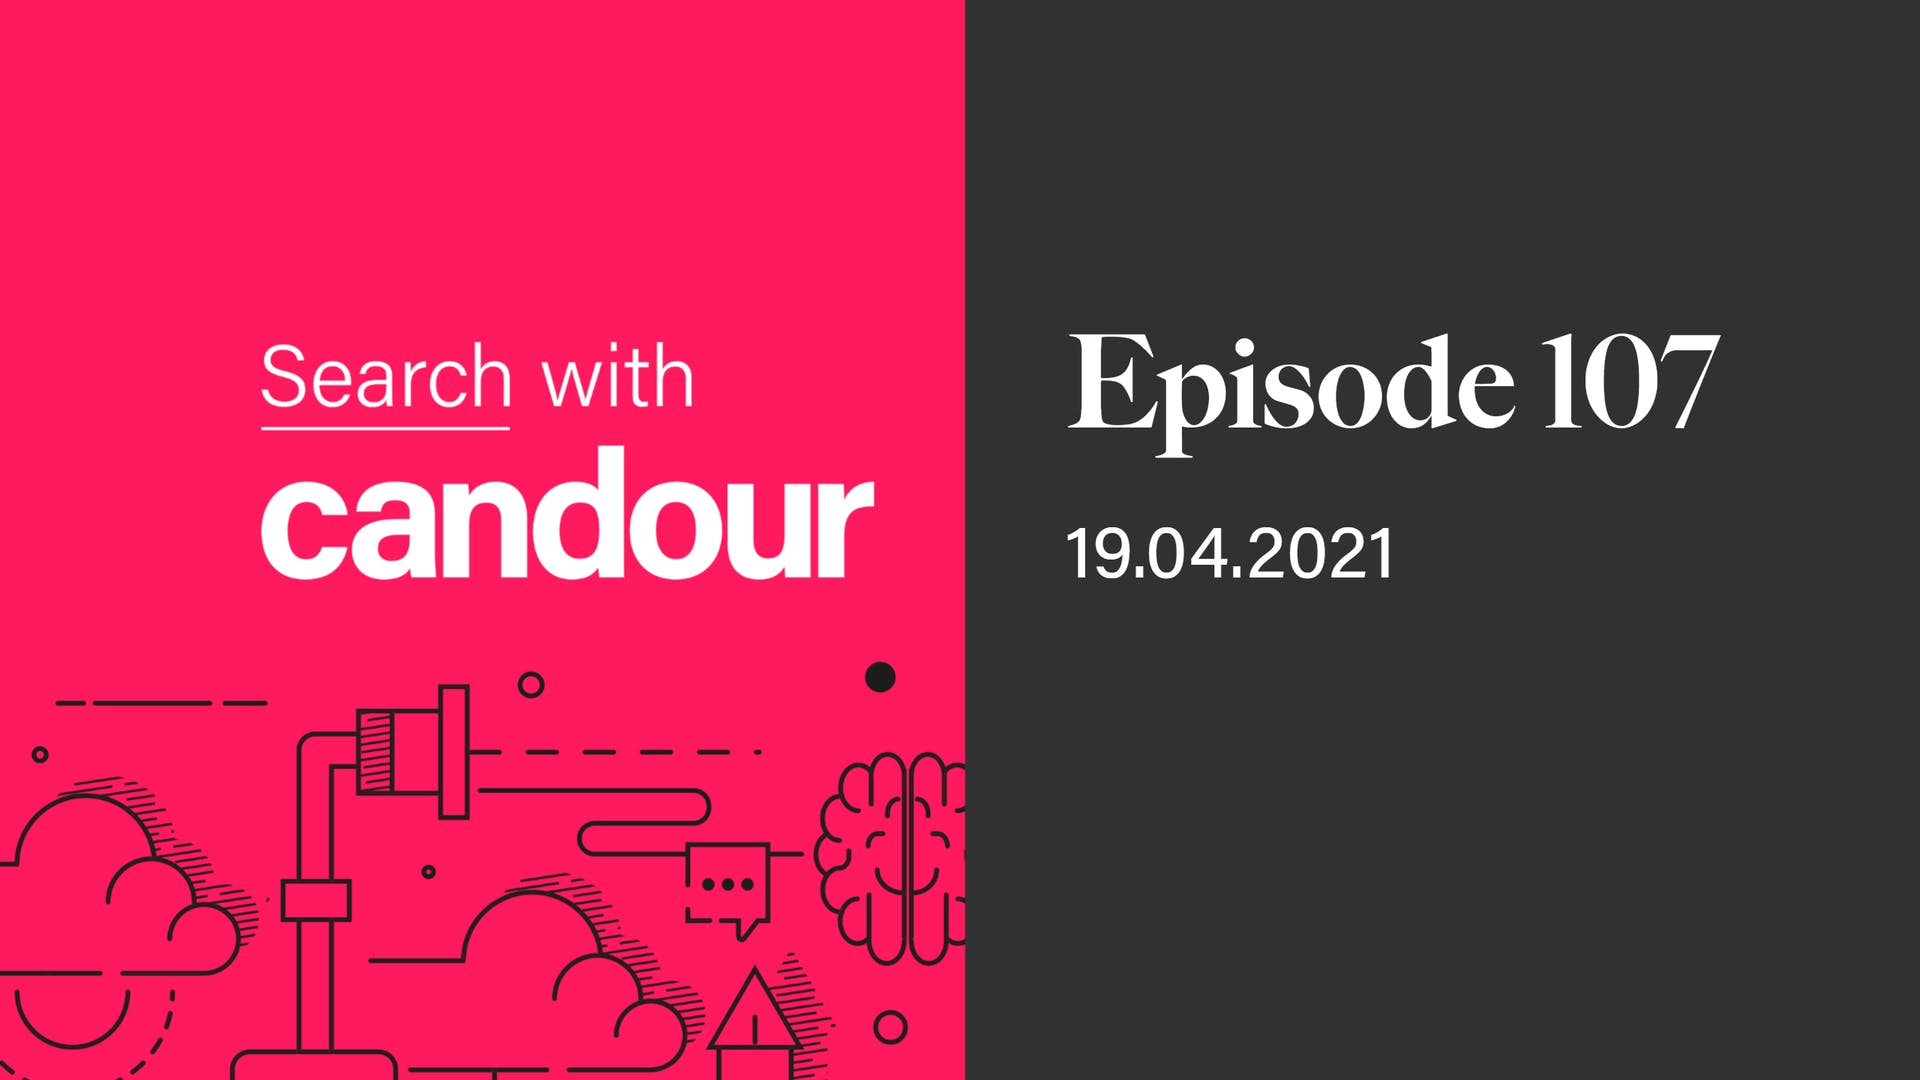 Episode 107 - Search with Candour